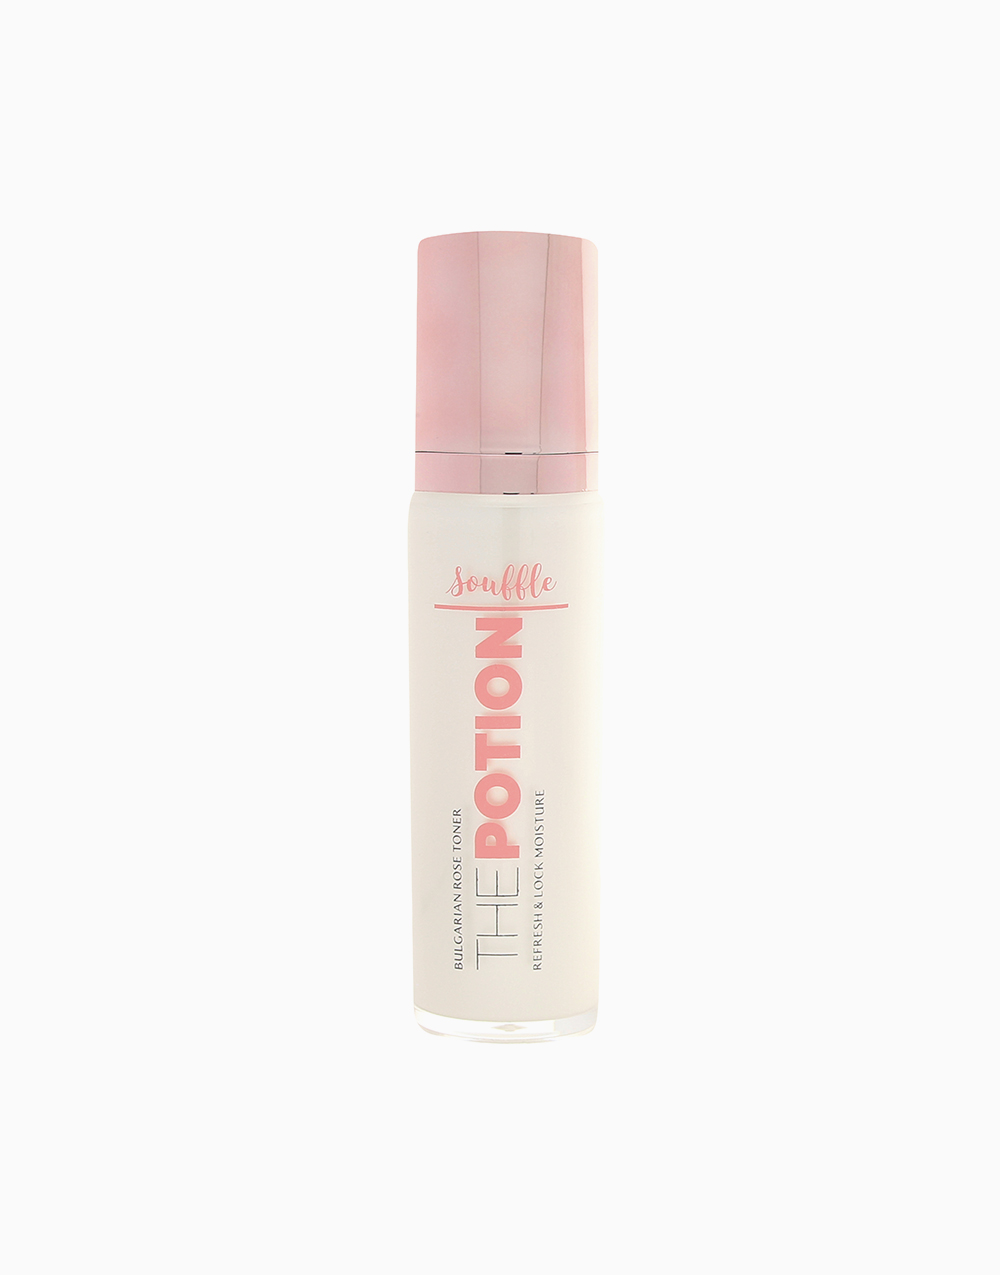 The Potion (100ml) by Souffle Beauty